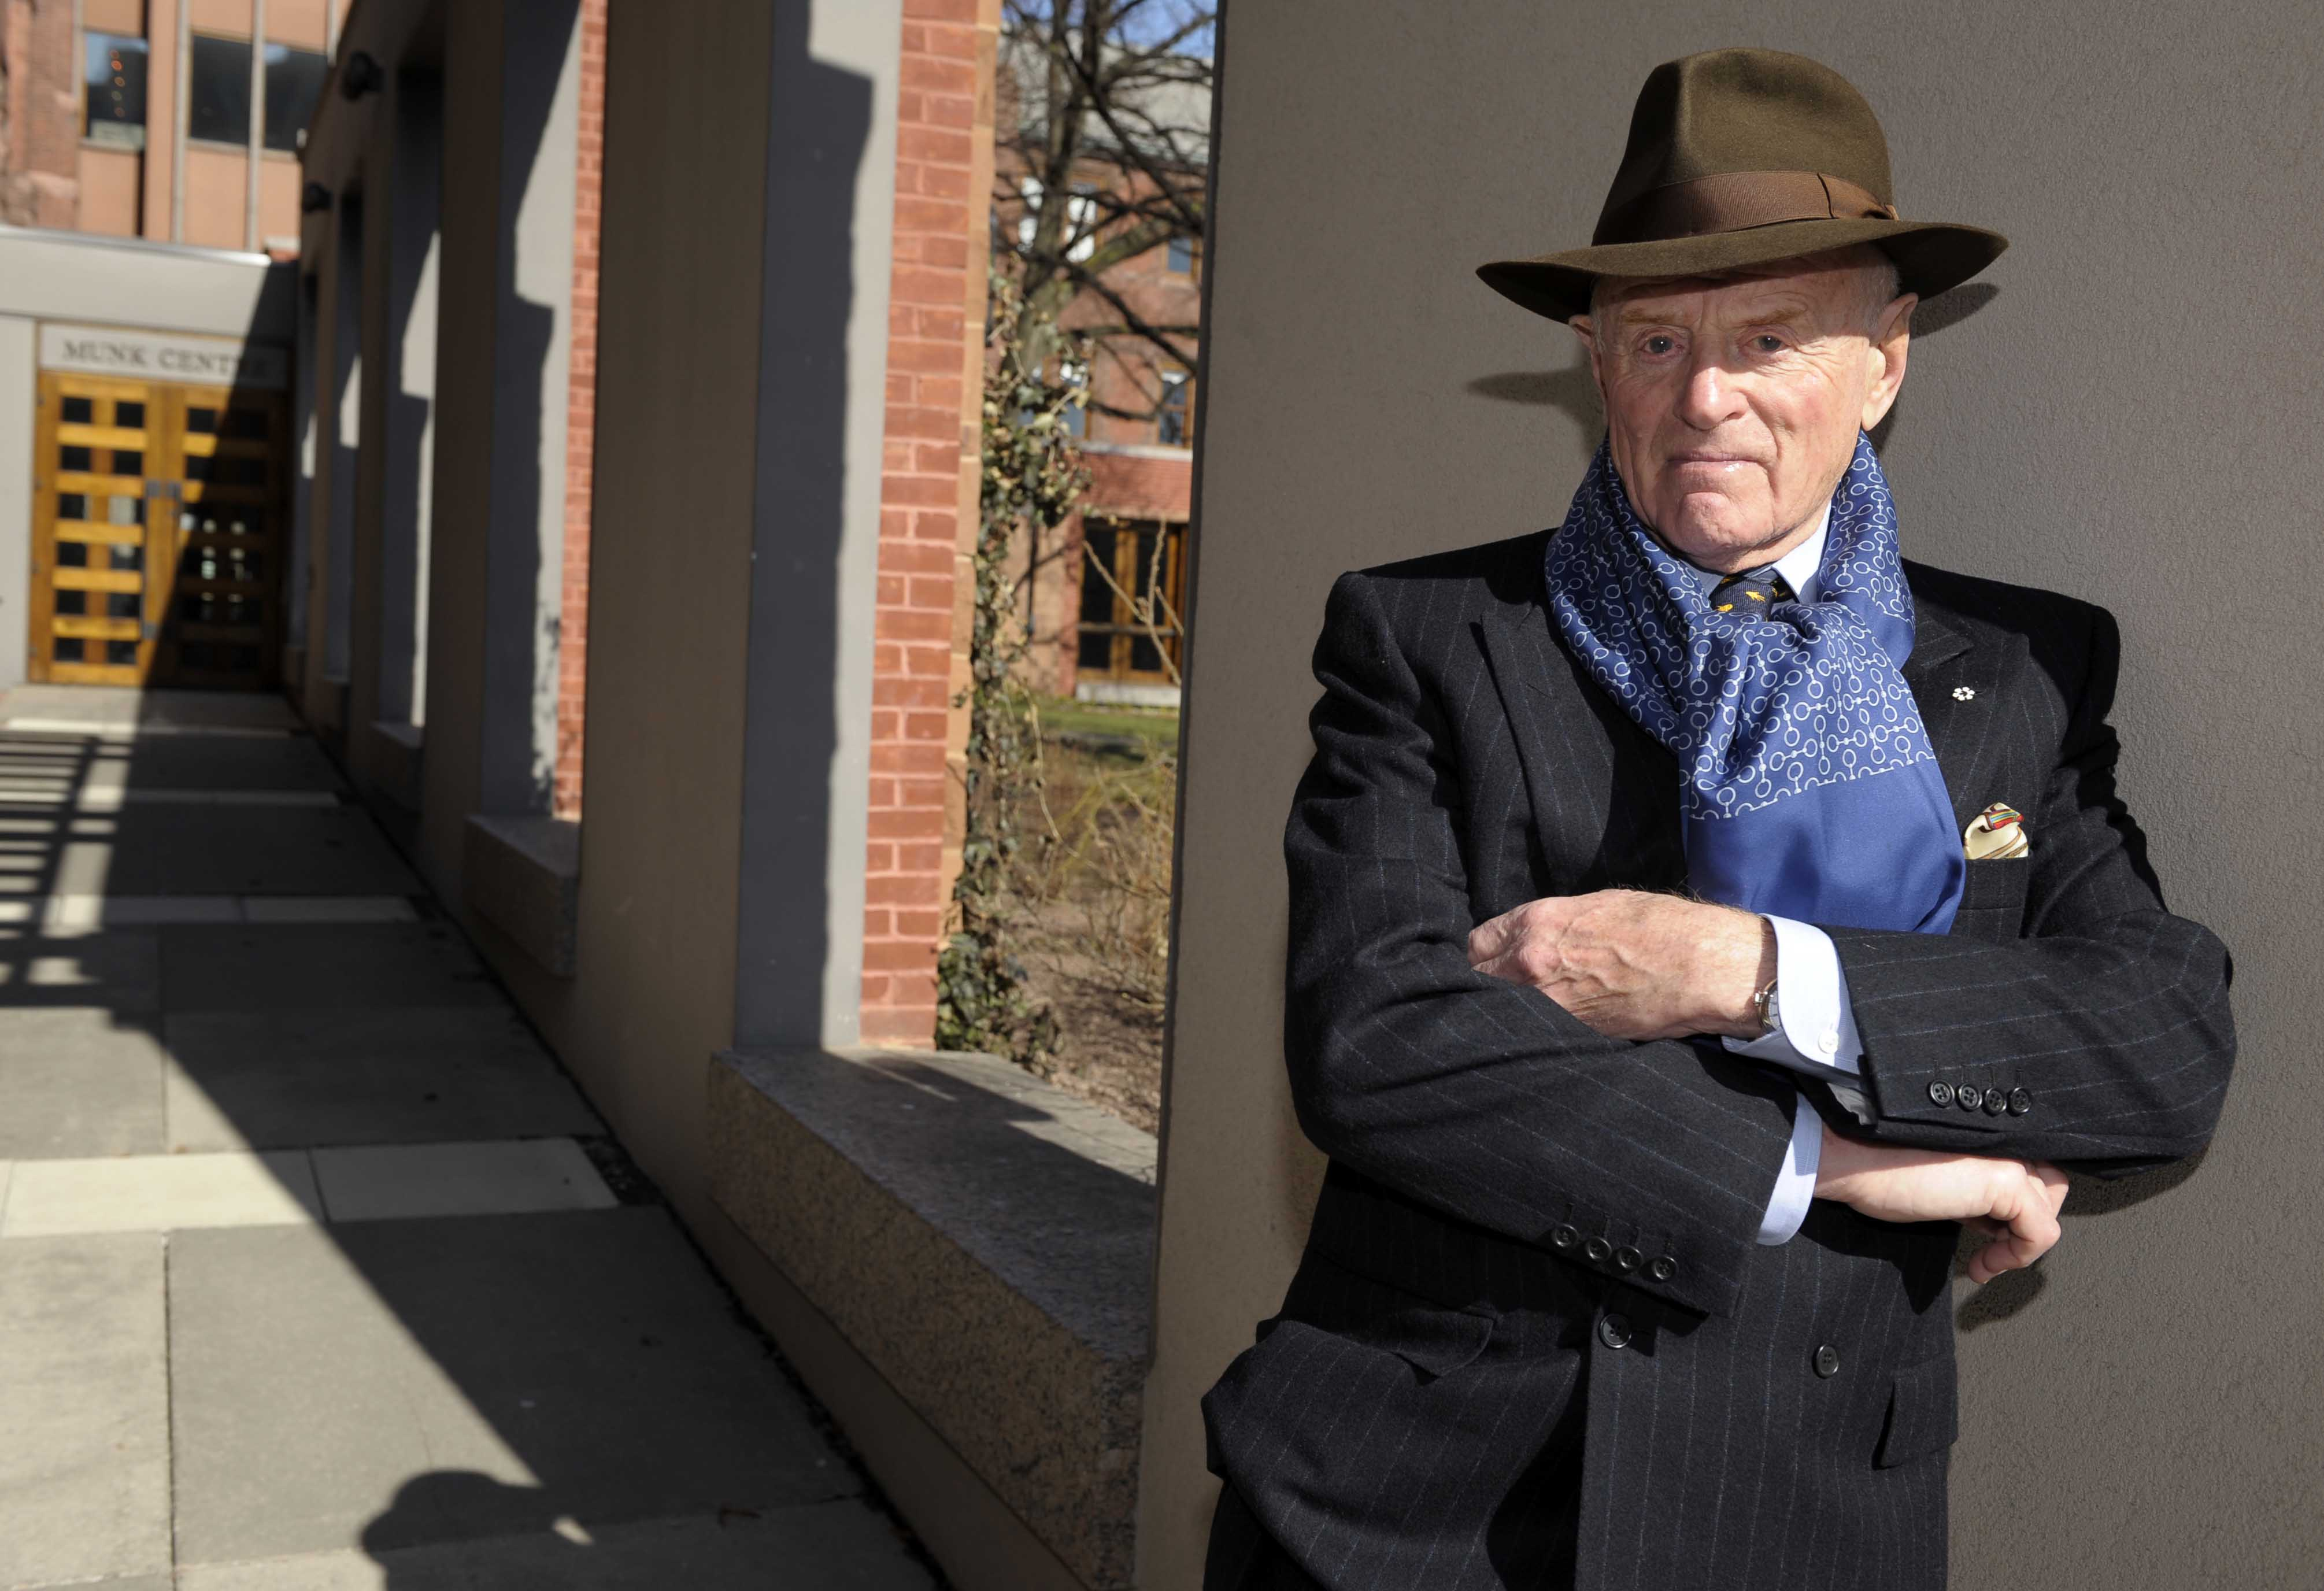 Peter Munk outside the Munk Centre for International Studies at the University of Toronto in 2008. Credit: Tibor Kolley.